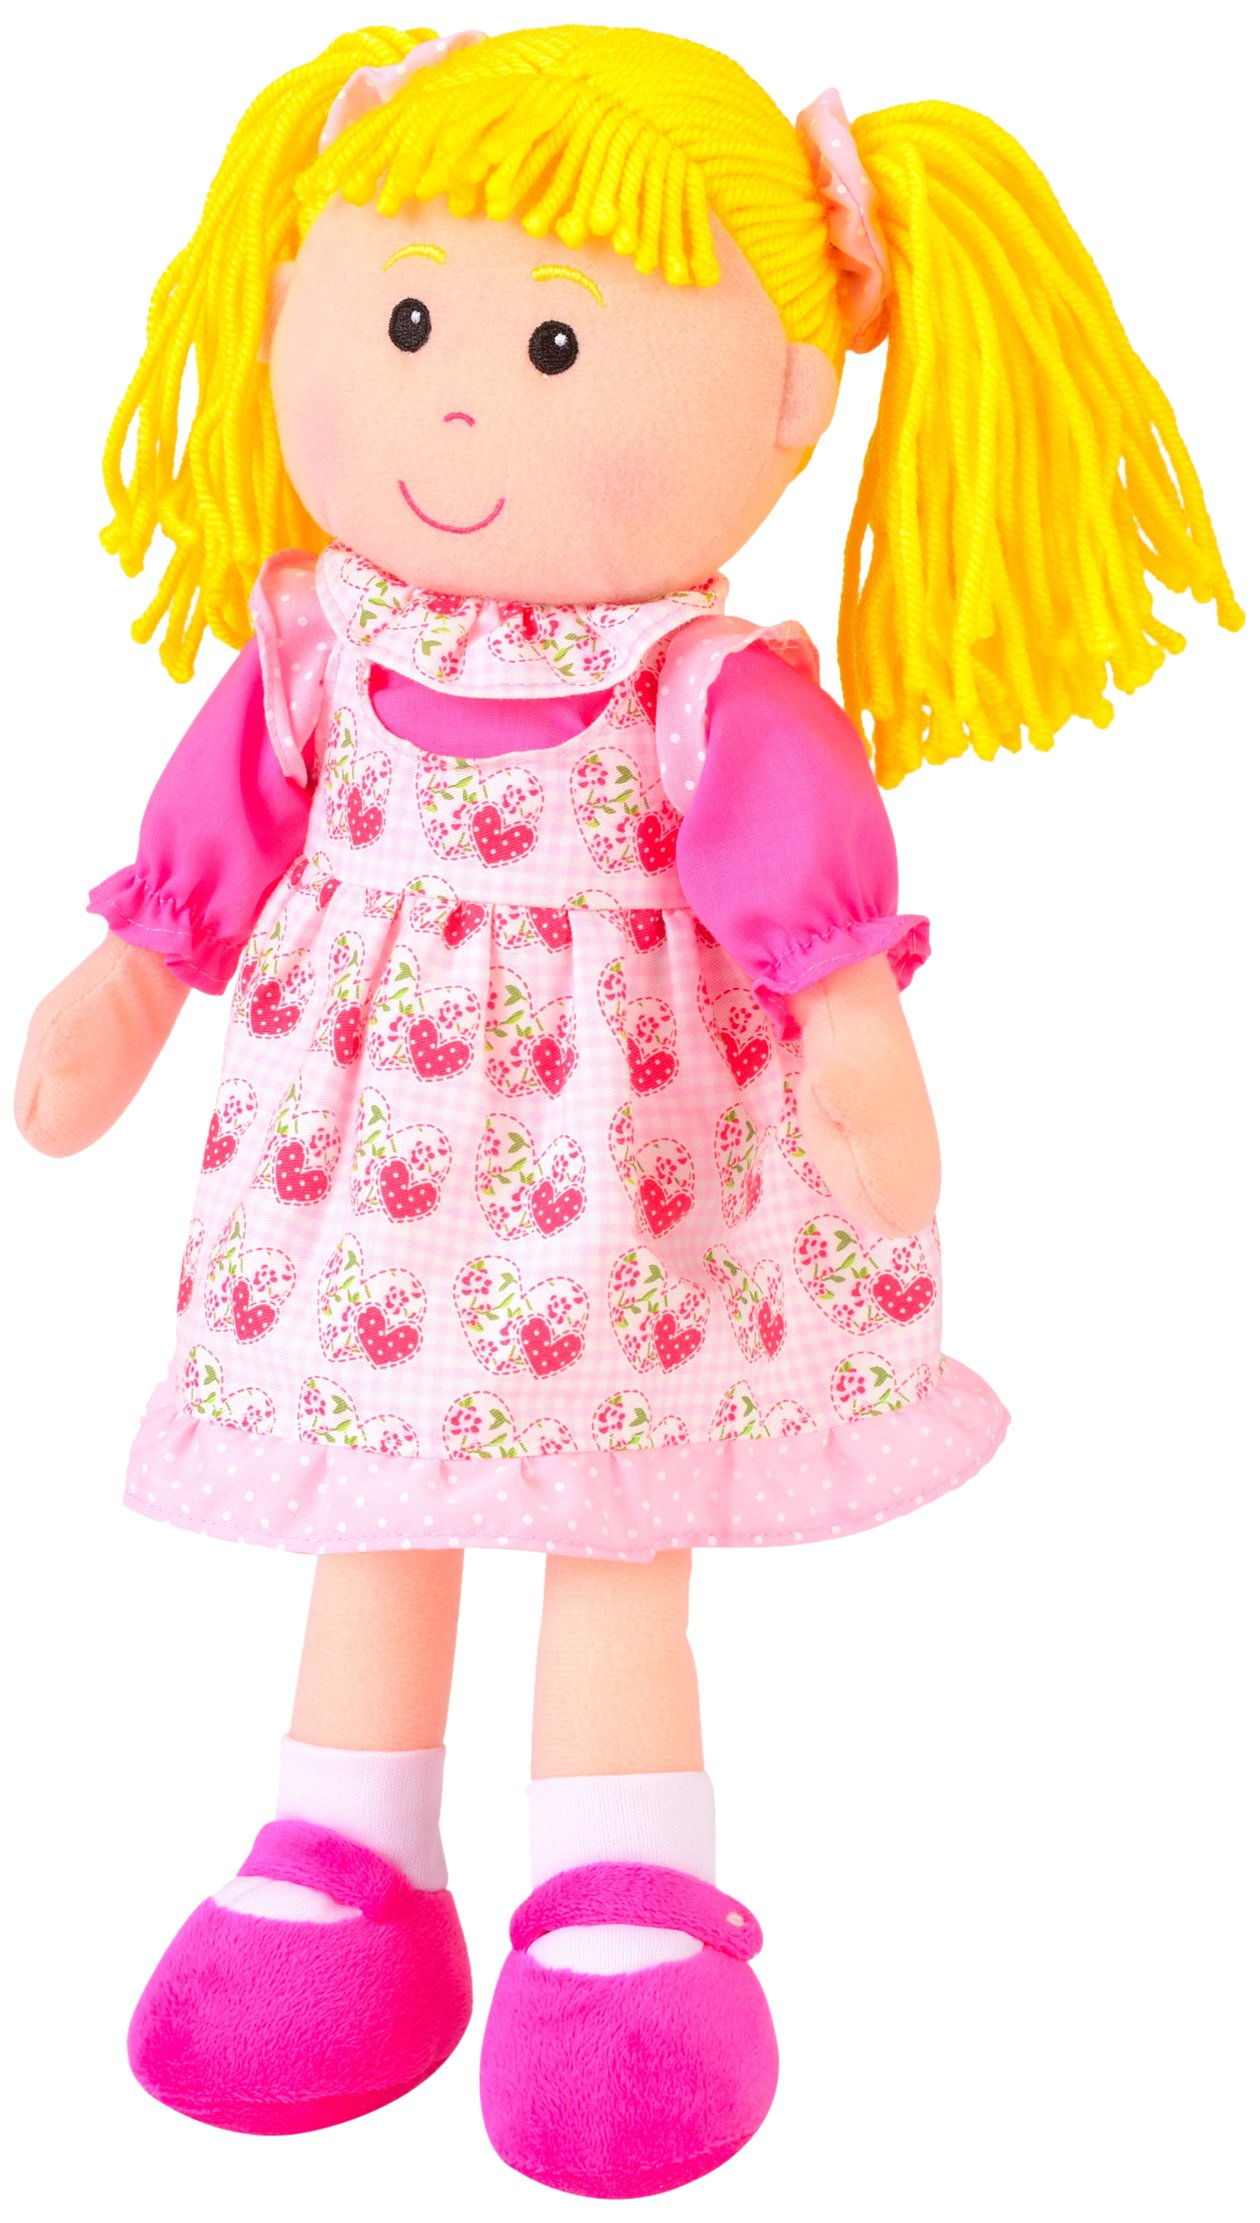 Preschool Goldilocks Rag Doll by Test Manufacturer